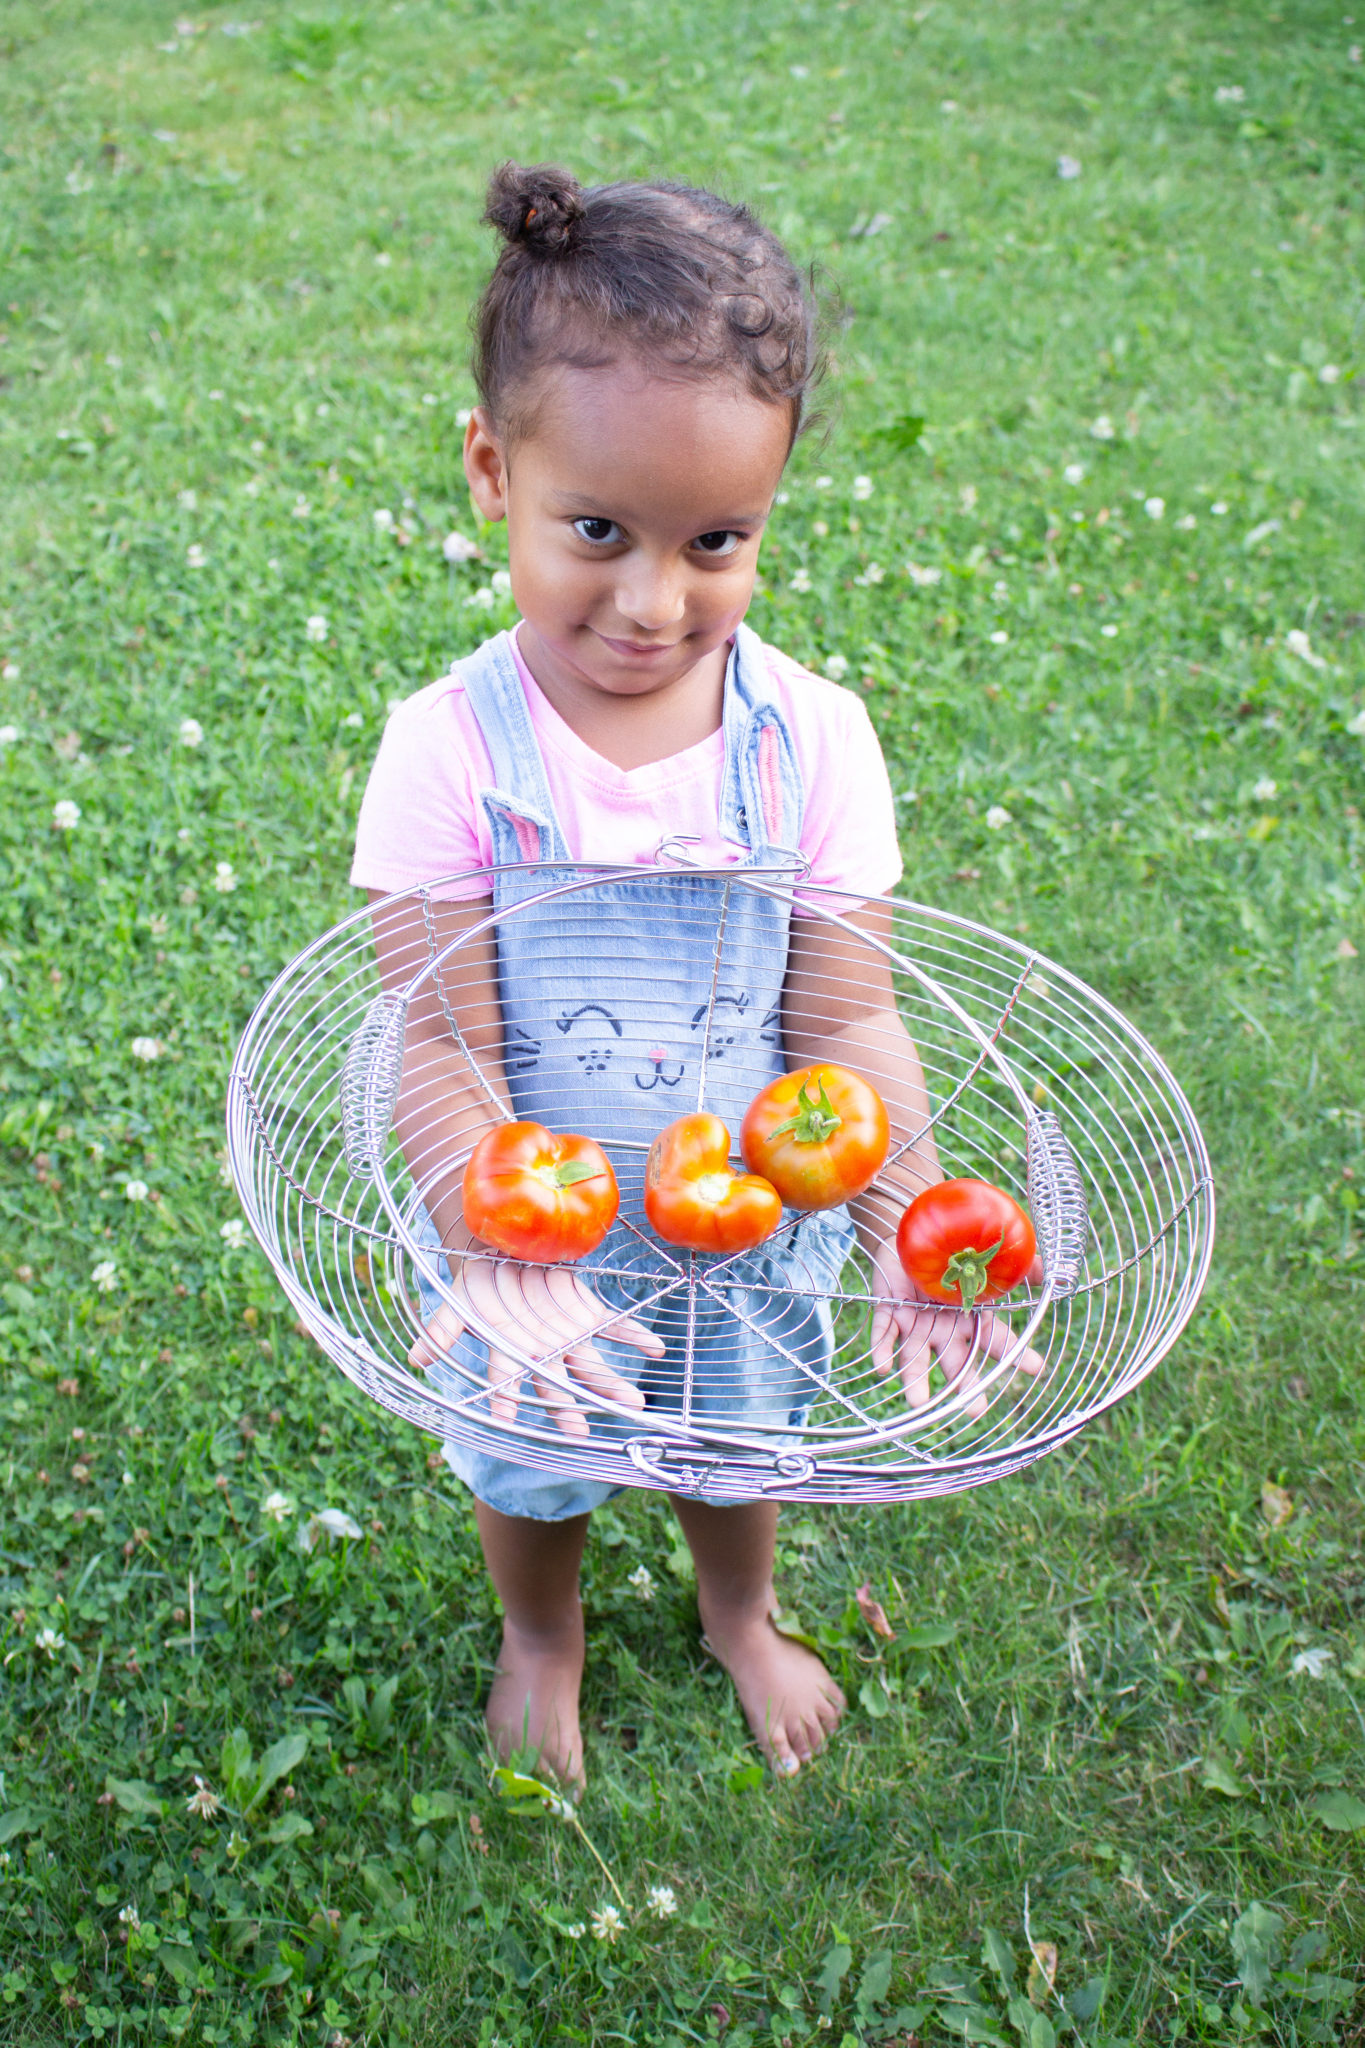 Heart-Shaped Tomato And More Garden Update!